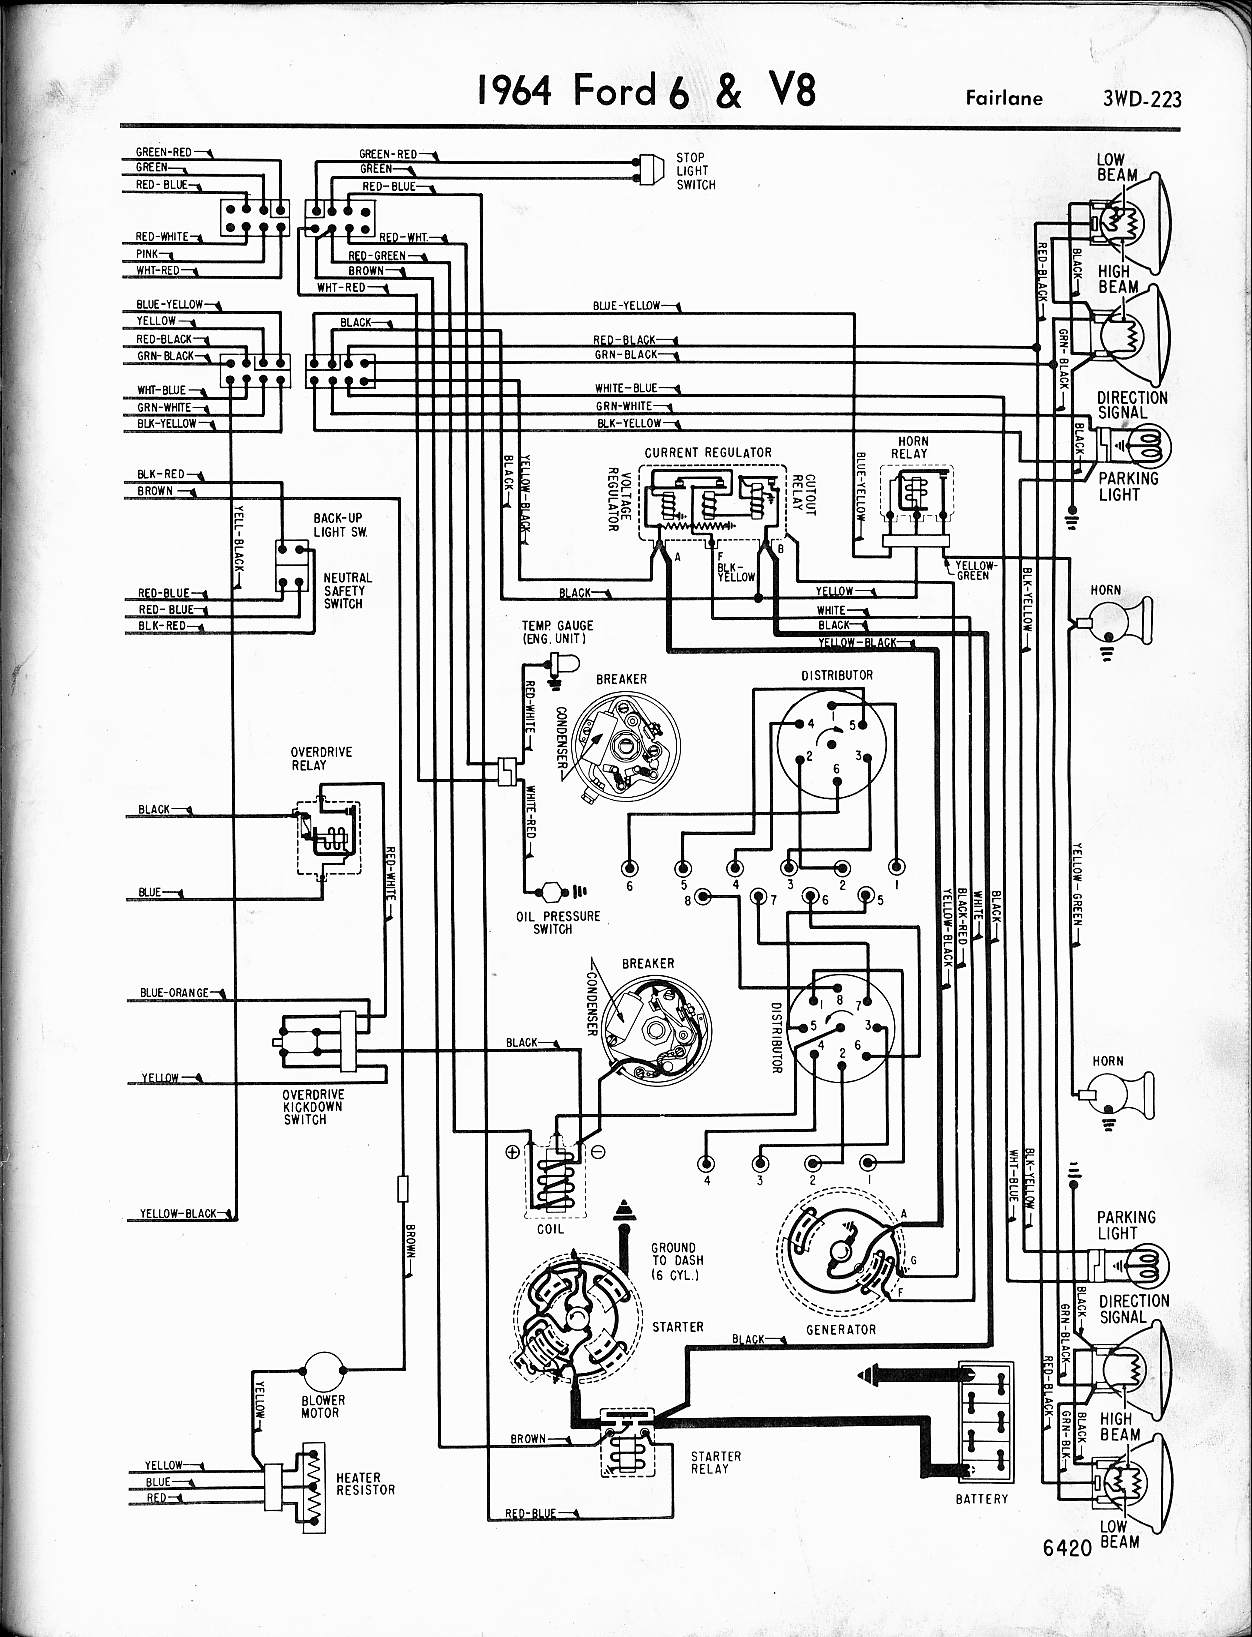 [DIAGRAM_3ER]  9AEAA 1964 Ford Truck Wiper Switch Wiring Diagram | Wiring Resources | Delco Radio Wiring Diagram 1964 |  | Wiring Resources